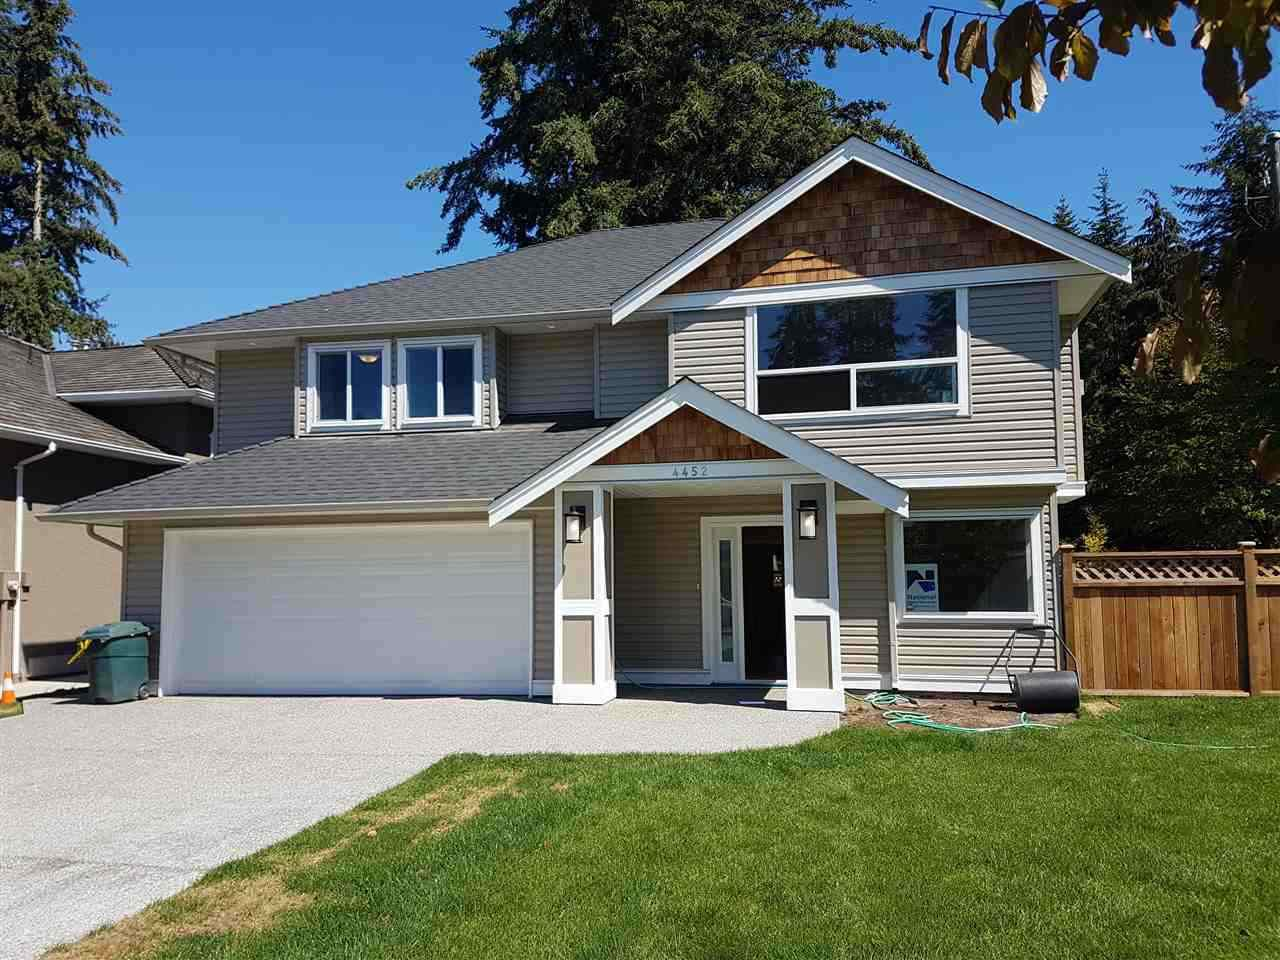 Main Photo: 4452 208A Street in Langley: Brookswood Langley House for sale : MLS®# R2119827